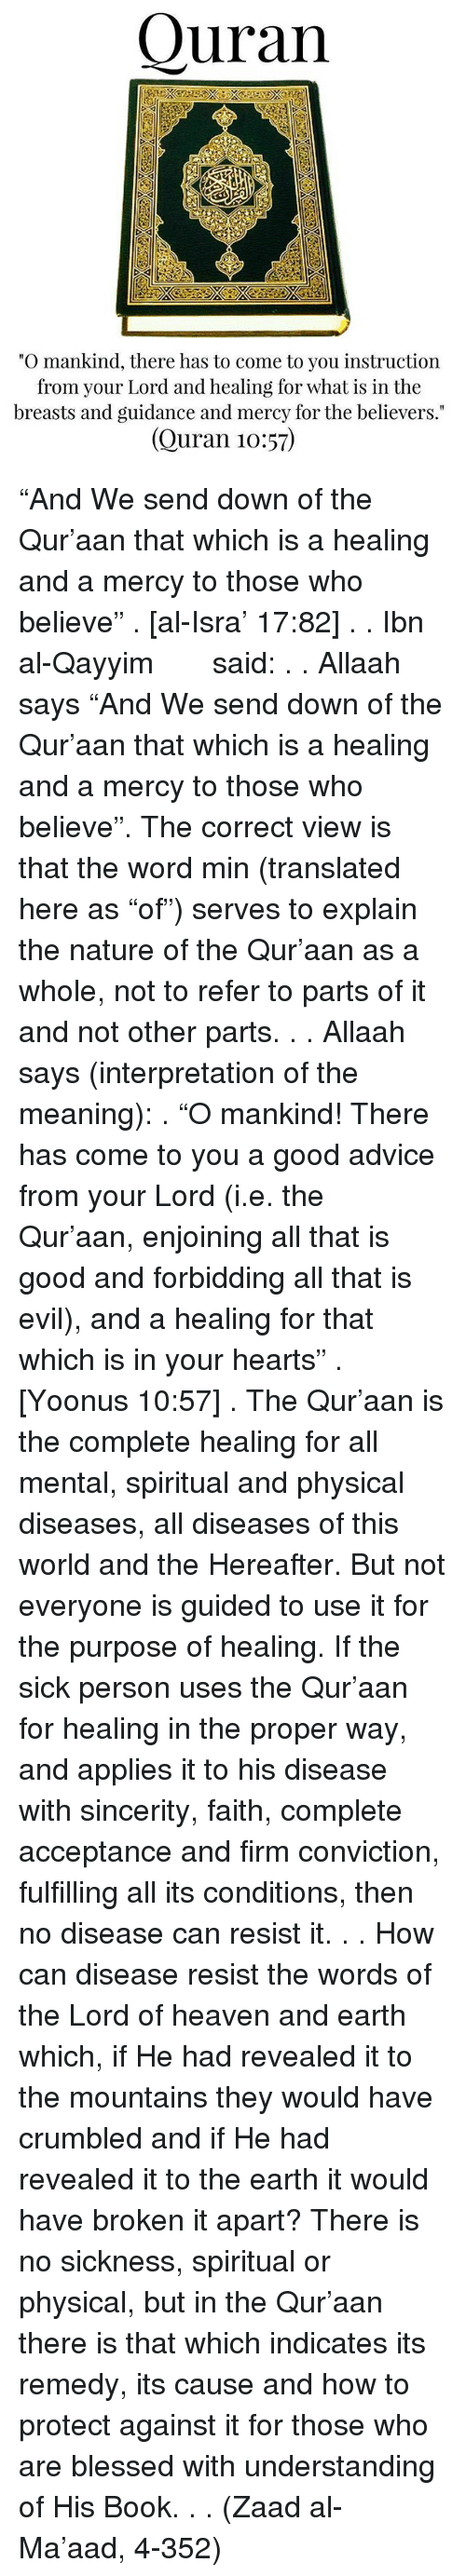 "Advice, Blessed, and Heaven: Quran  ""O mankind, there has to come to you instruction  from your Lord and healing for what is in the  breasts and guidance and mercy for the believers.""  (Quran 10:57) ""And We send down of the Qur'aan that which is a healing and a mercy to those who believe"" . [al-Isra' 17:82] . . Ibn al-Qayyim رحمه الله said: . . Allaah says ""And We send down of the Qur'aan that which is a healing and a mercy to those who believe"". The correct view is that the word min (translated here as ""of"") serves to explain the nature of the Qur'aan as a whole, not to refer to parts of it and not other parts. . . Allaah says (interpretation of the meaning): . ""O mankind! There has come to you a good advice from your Lord (i.e. the Qur'aan, enjoining all that is good and forbidding all that is evil), and a healing for that which is in your hearts"" . [Yoonus 10:57] . The Qur'aan is the complete healing for all mental, spiritual and physical diseases, all diseases of this world and the Hereafter. But not everyone is guided to use it for the purpose of healing. If the sick person uses the Qur'aan for healing in the proper way, and applies it to his disease with sincerity, faith, complete acceptance and firm conviction, fulfilling all its conditions, then no disease can resist it. . . How can disease resist the words of the Lord of heaven and earth which, if He had revealed it to the mountains they would have crumbled and if He had revealed it to the earth it would have broken it apart? There is no sickness, spiritual or physical, but in the Qur'aan there is that which indicates its remedy, its cause and how to protect against it for those who are blessed with understanding of His Book. . . (Zaad al-Ma'aad, 4-352)"